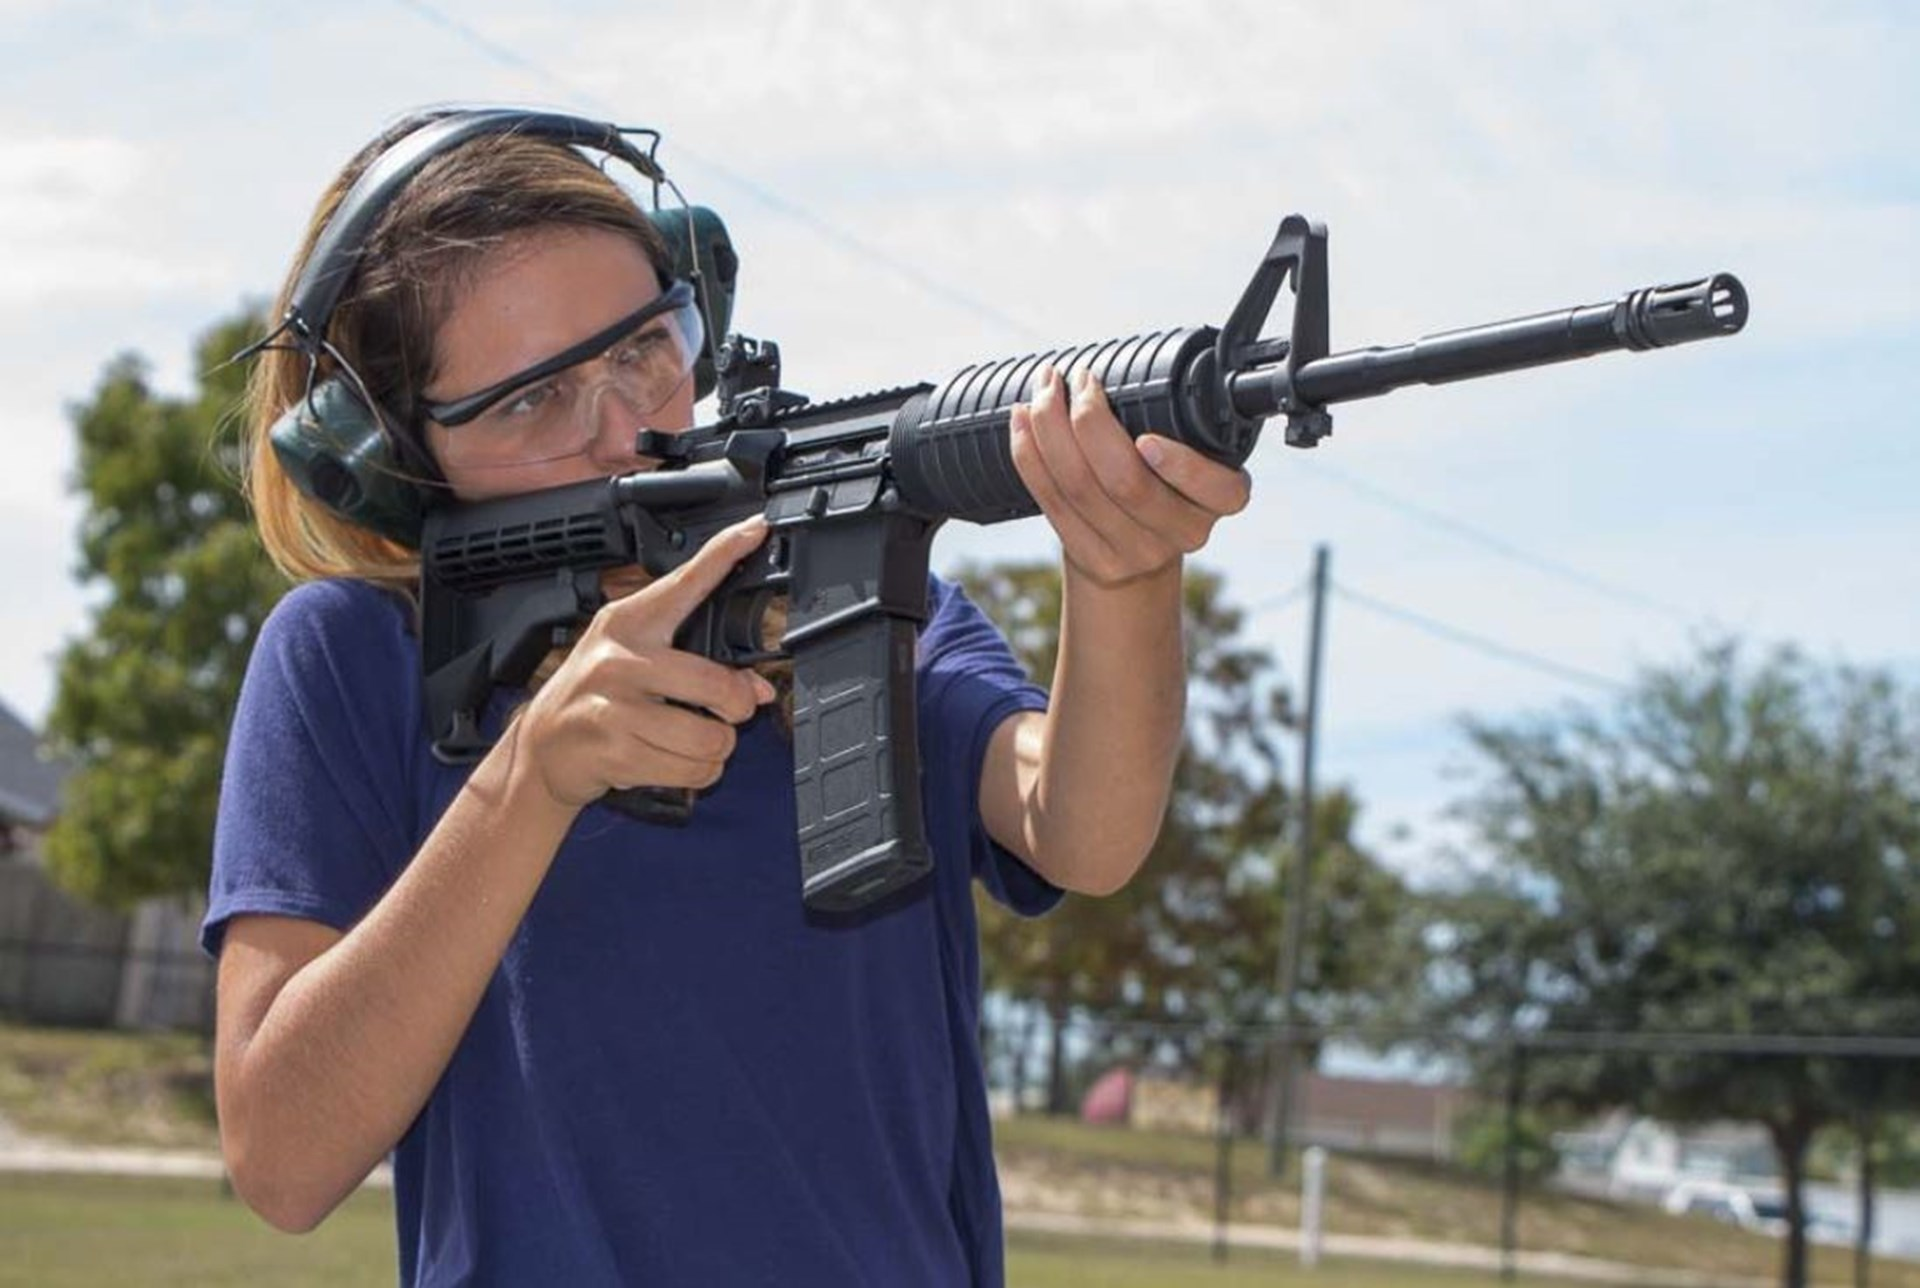 Are AR-15 Rifles a Public Safety Threat? Here's What the Data Say